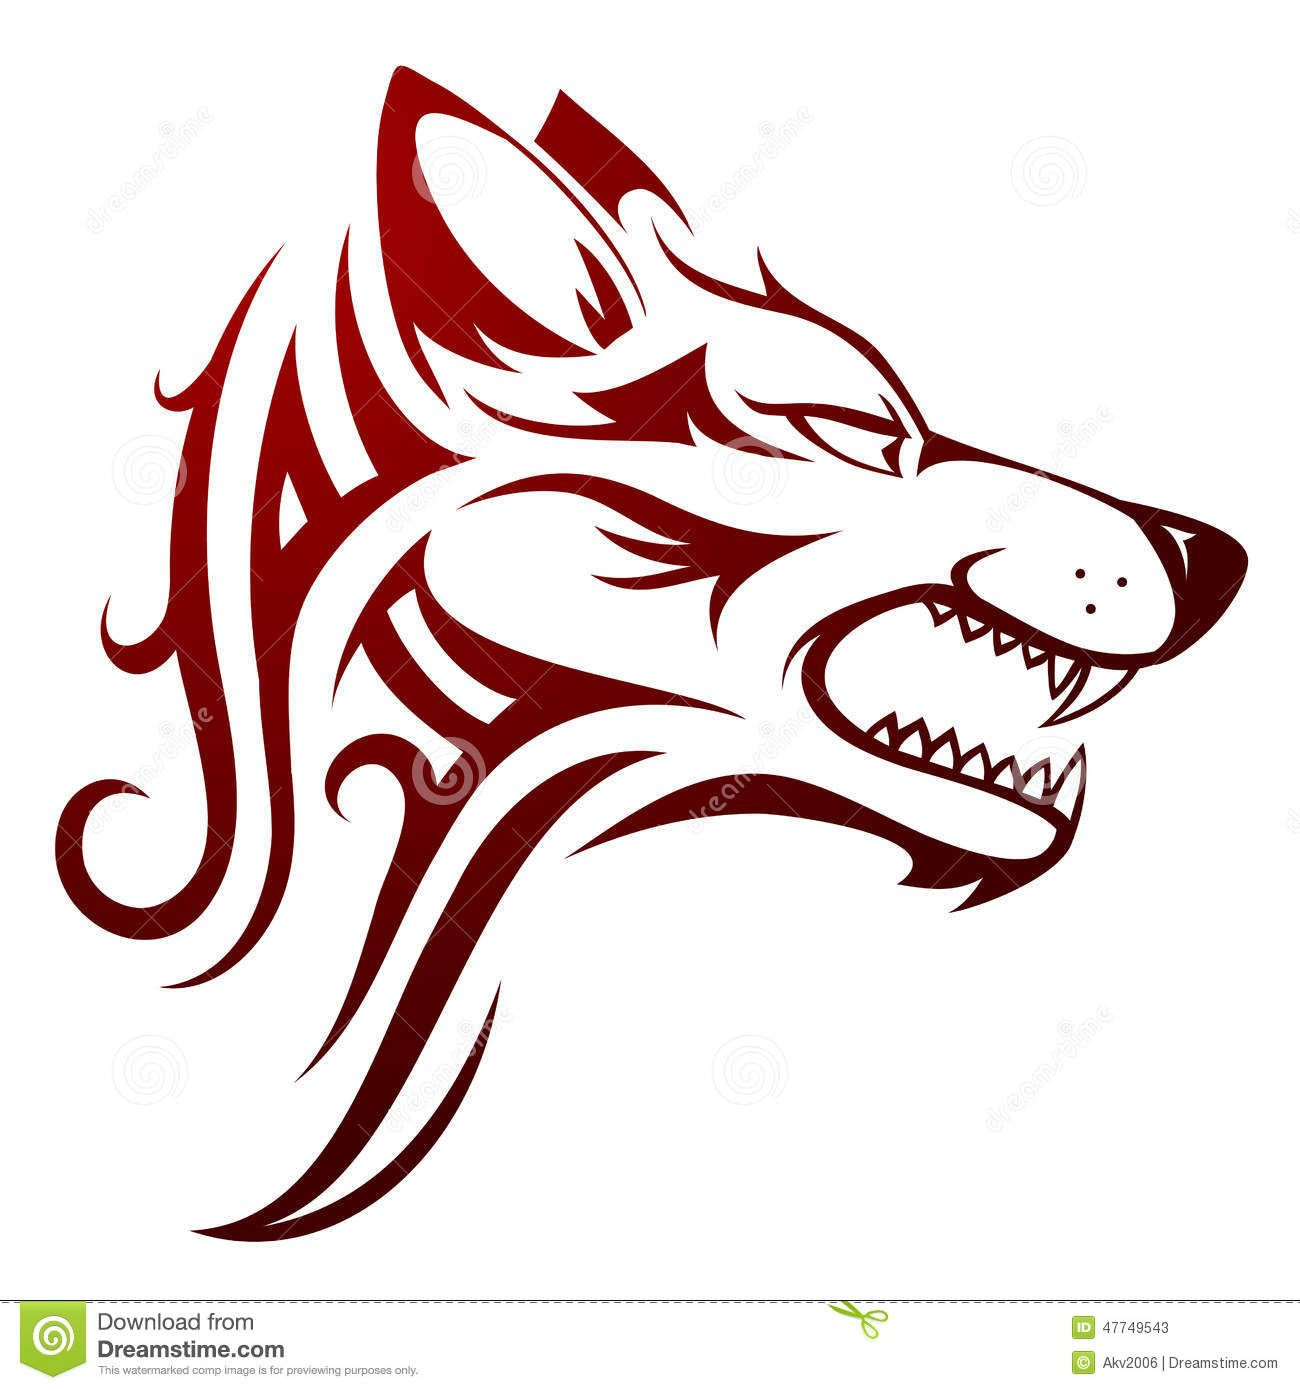 Wolf Head Tattoo - Download From Over 36 Million High Quality Stock ...